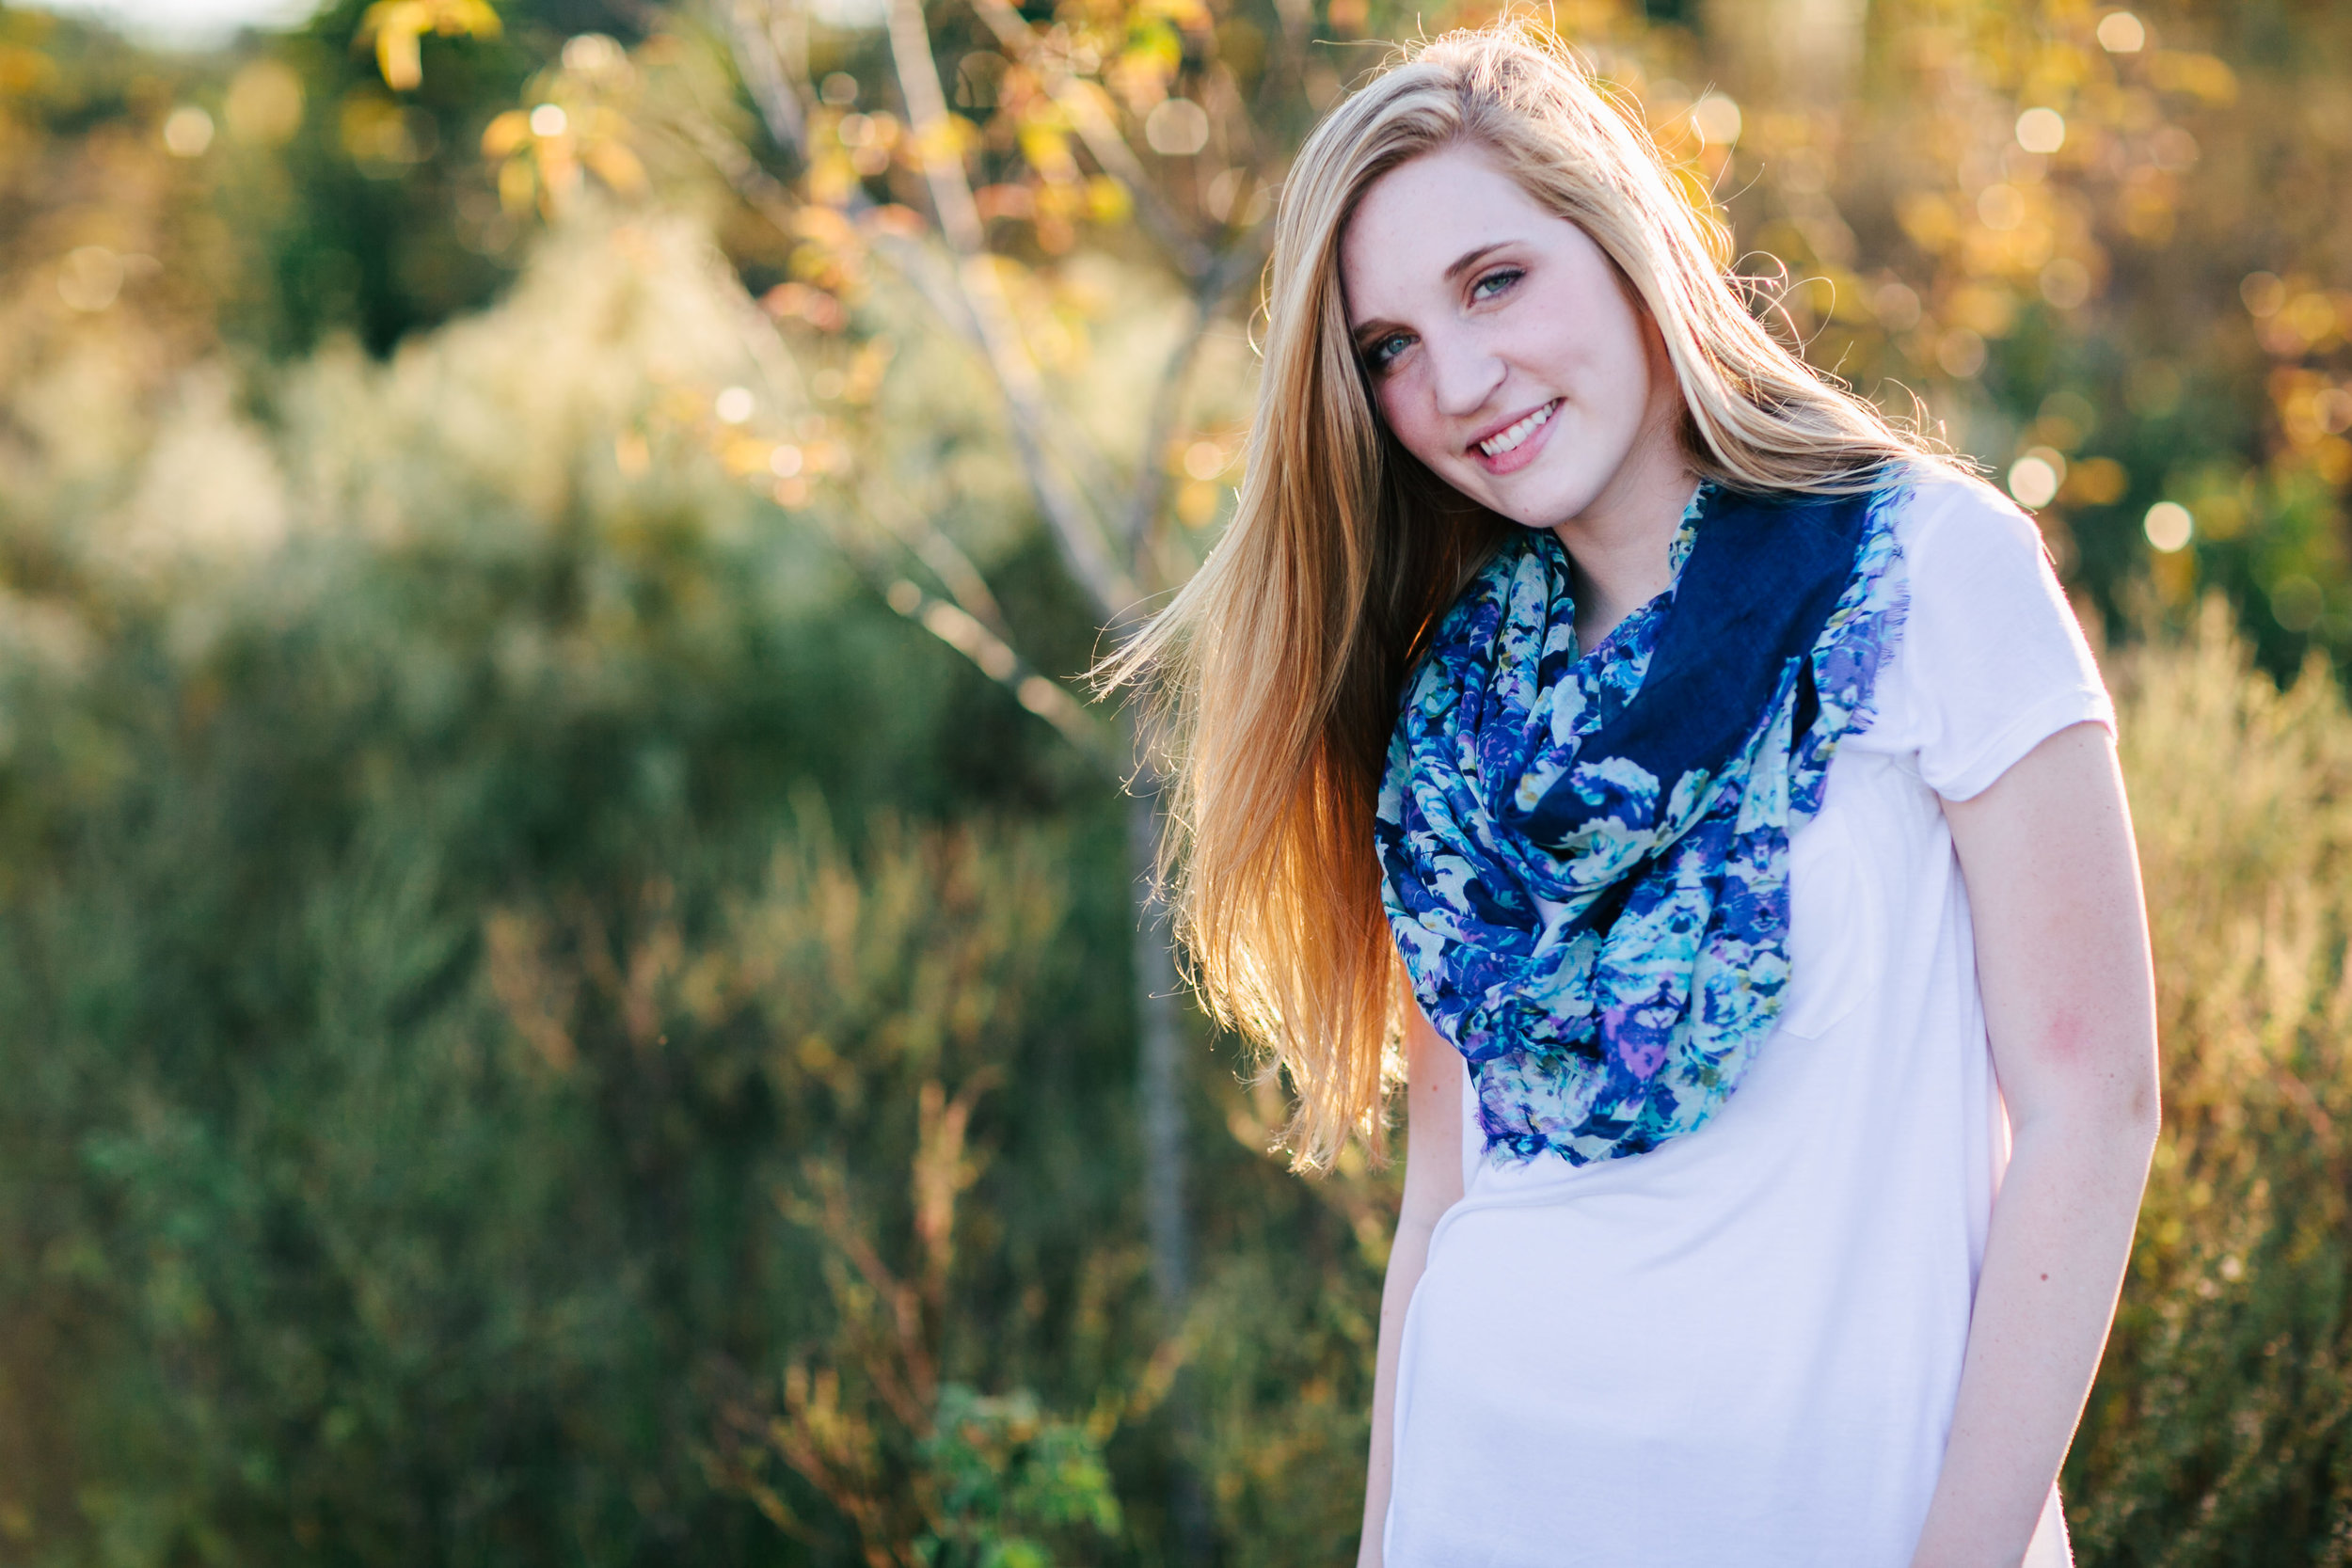 A_SeniorSession_1027_0948.jpg